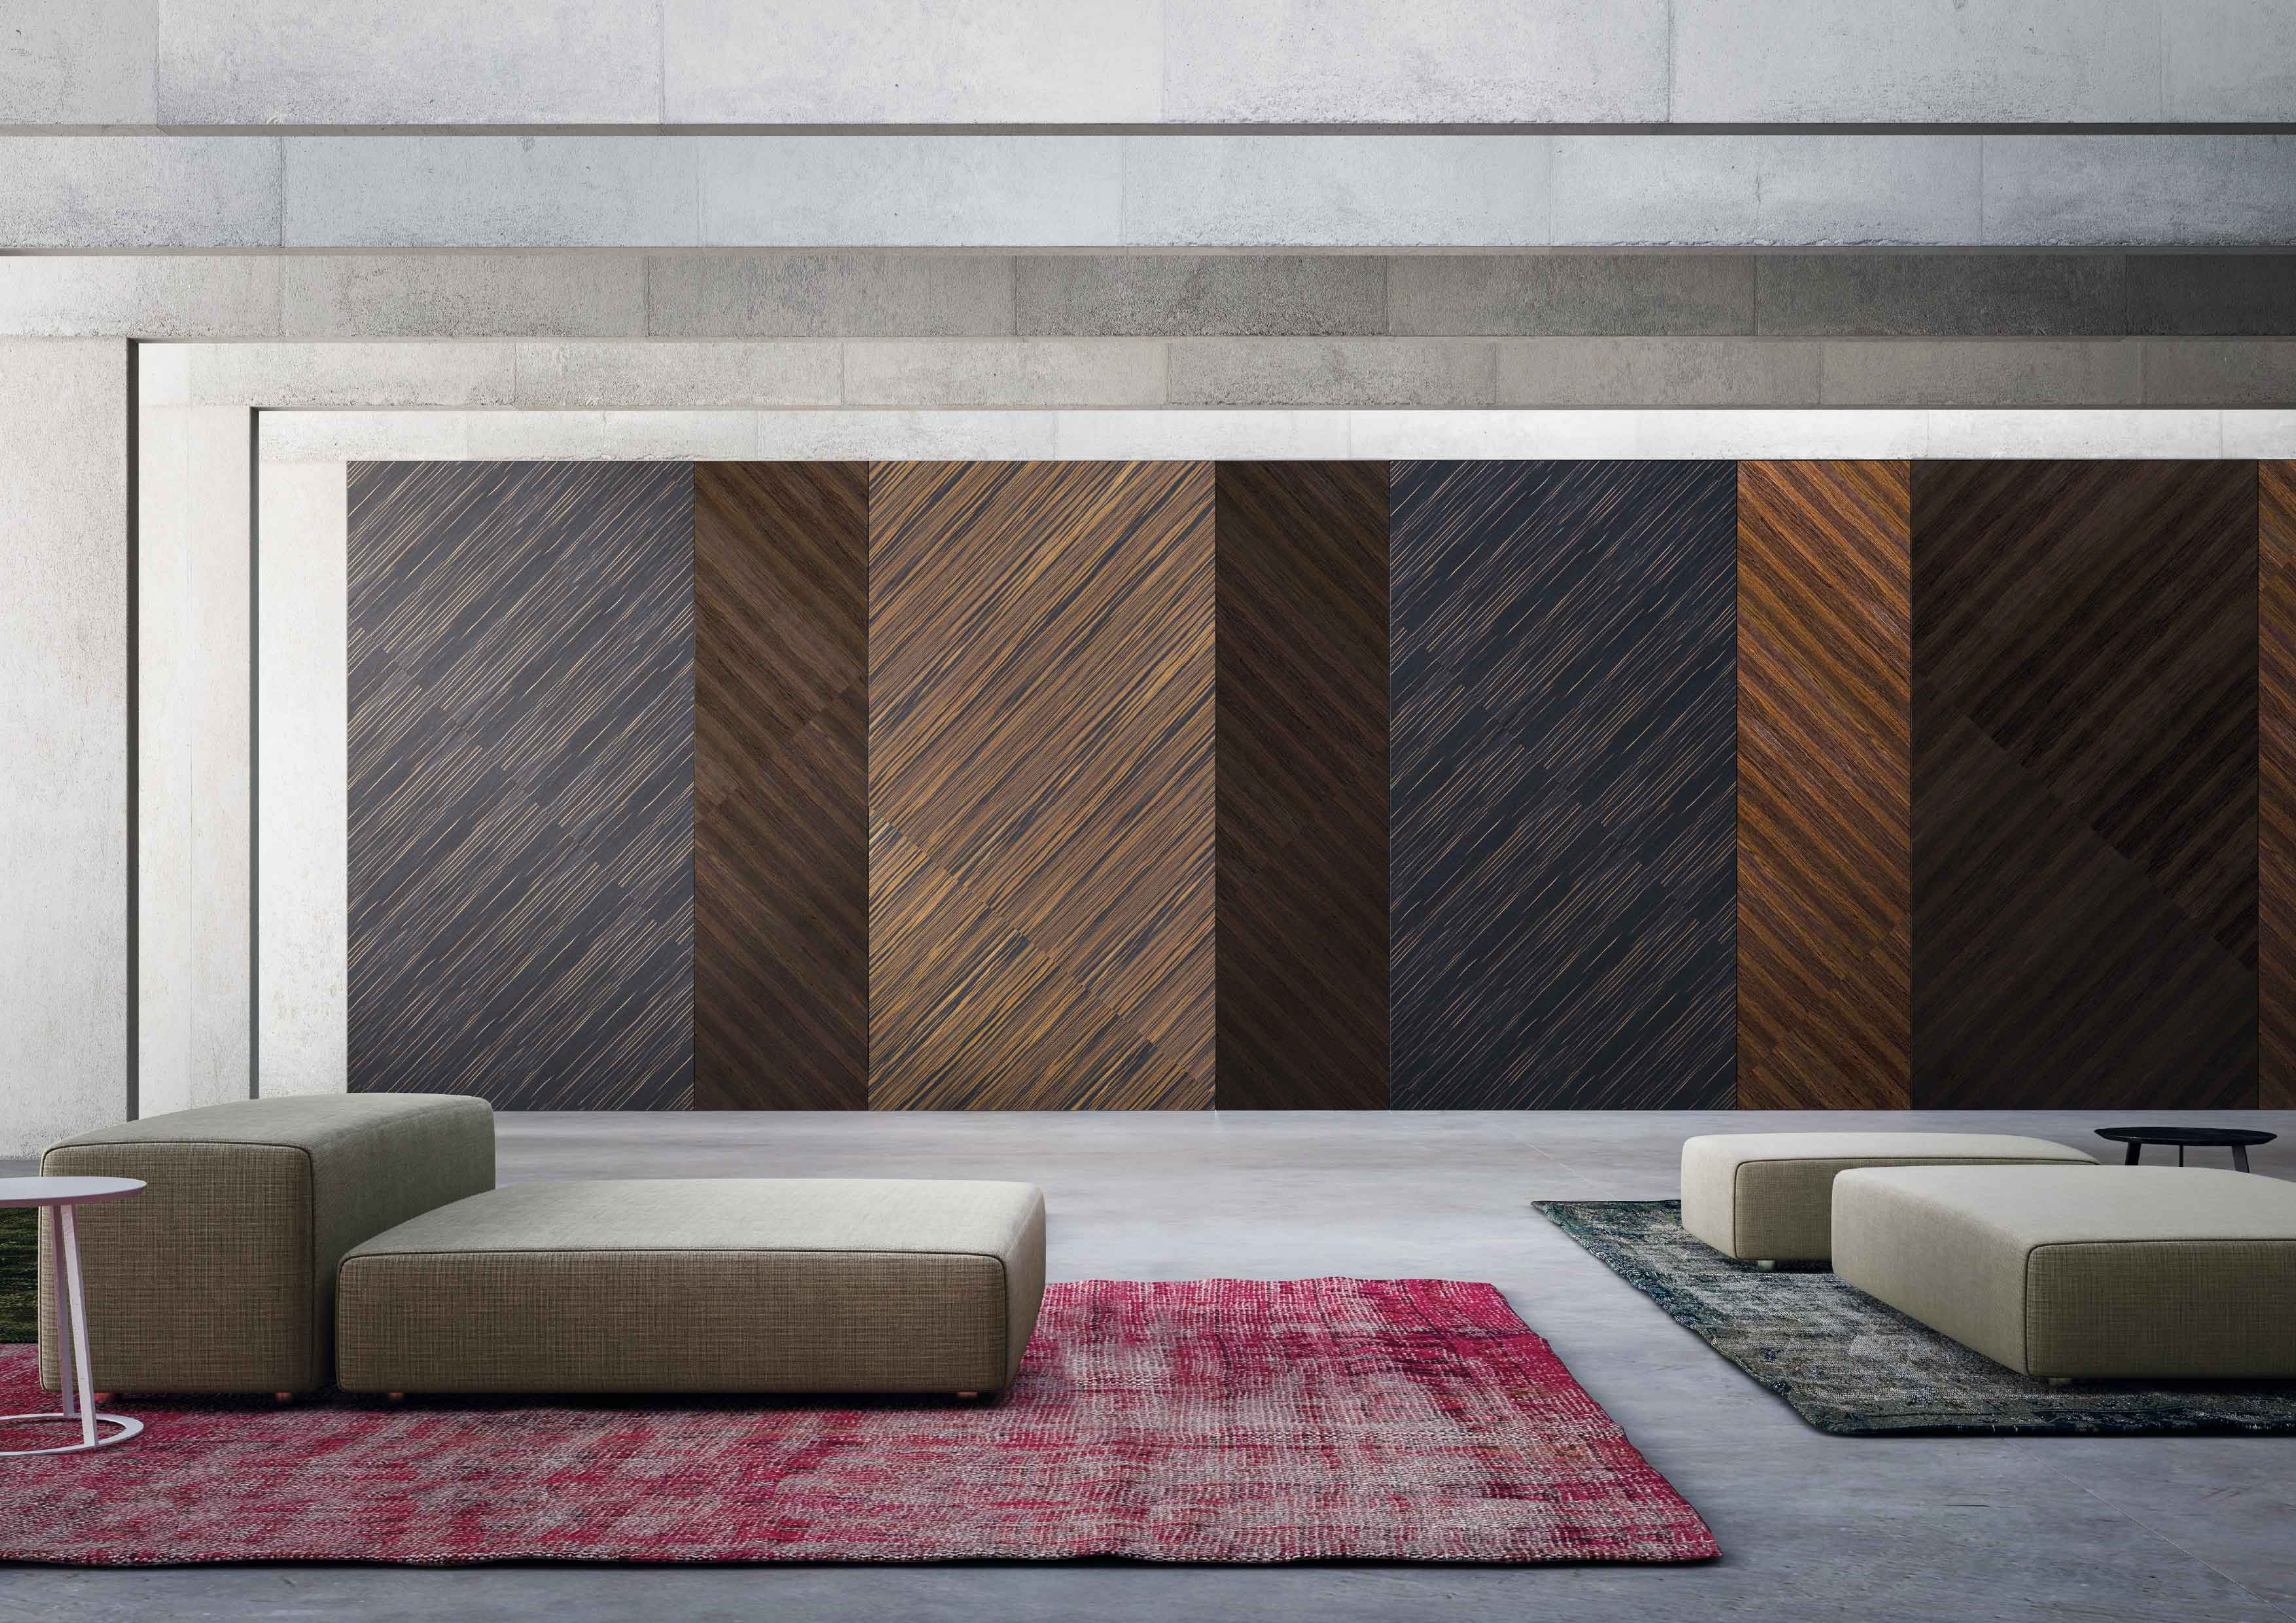 Pivoting wall in a resort in Jakarta, designed by Linvisibile by Portarredo, all with FritsJurgens System 3 pivot hinges